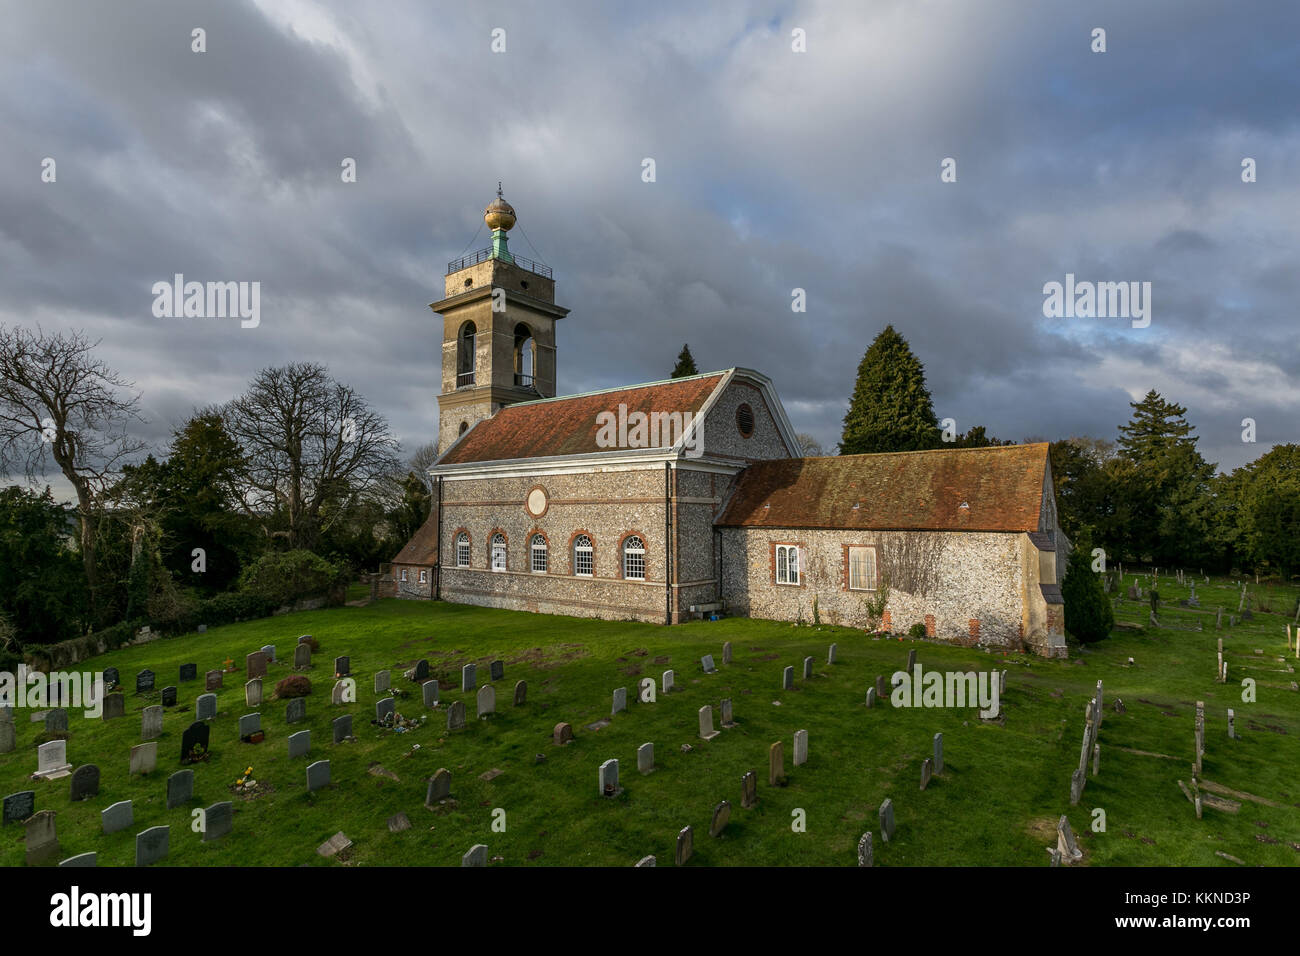 St Lawrence Church,West Wycombe,Buckinghamshire - Stock Image